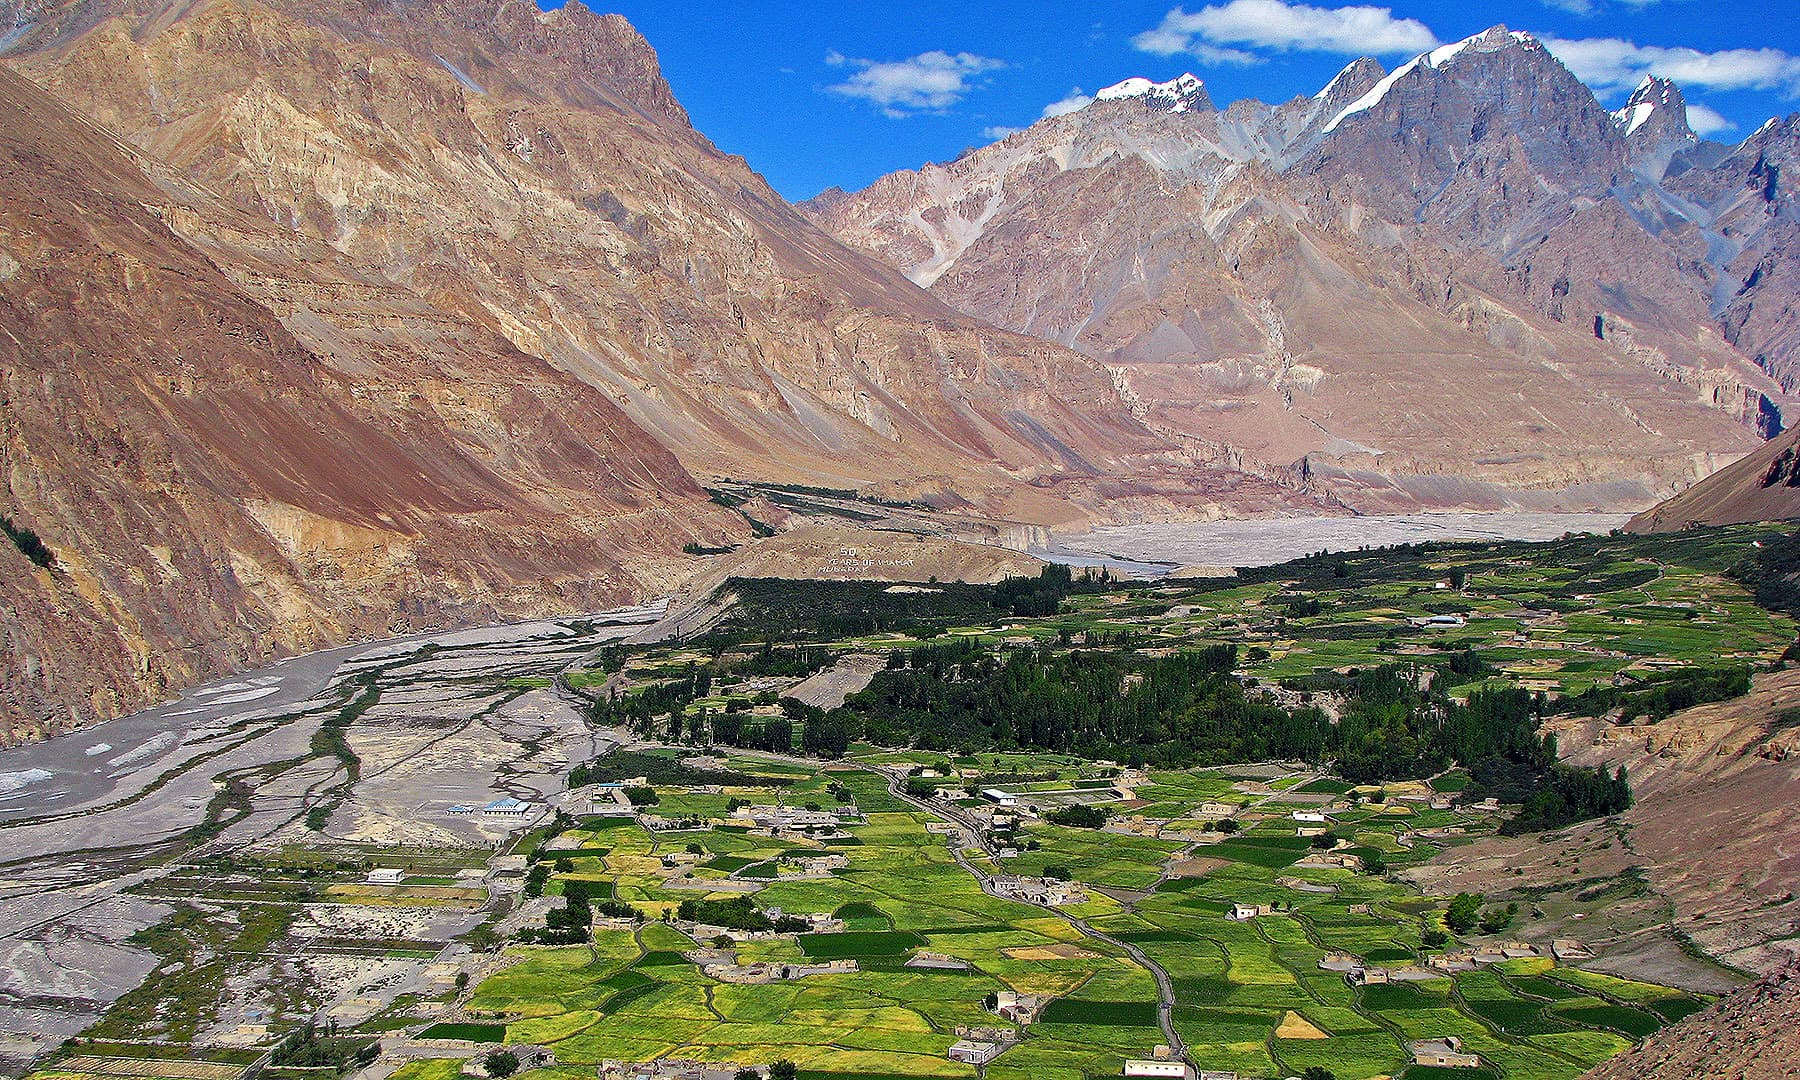 View of Central Shimshal and Khizerabad Village with the Sunrise Peak (Yeerghatak) in the backdrop. The small green patch across the Shimshal River is Band-e-Ser Village.